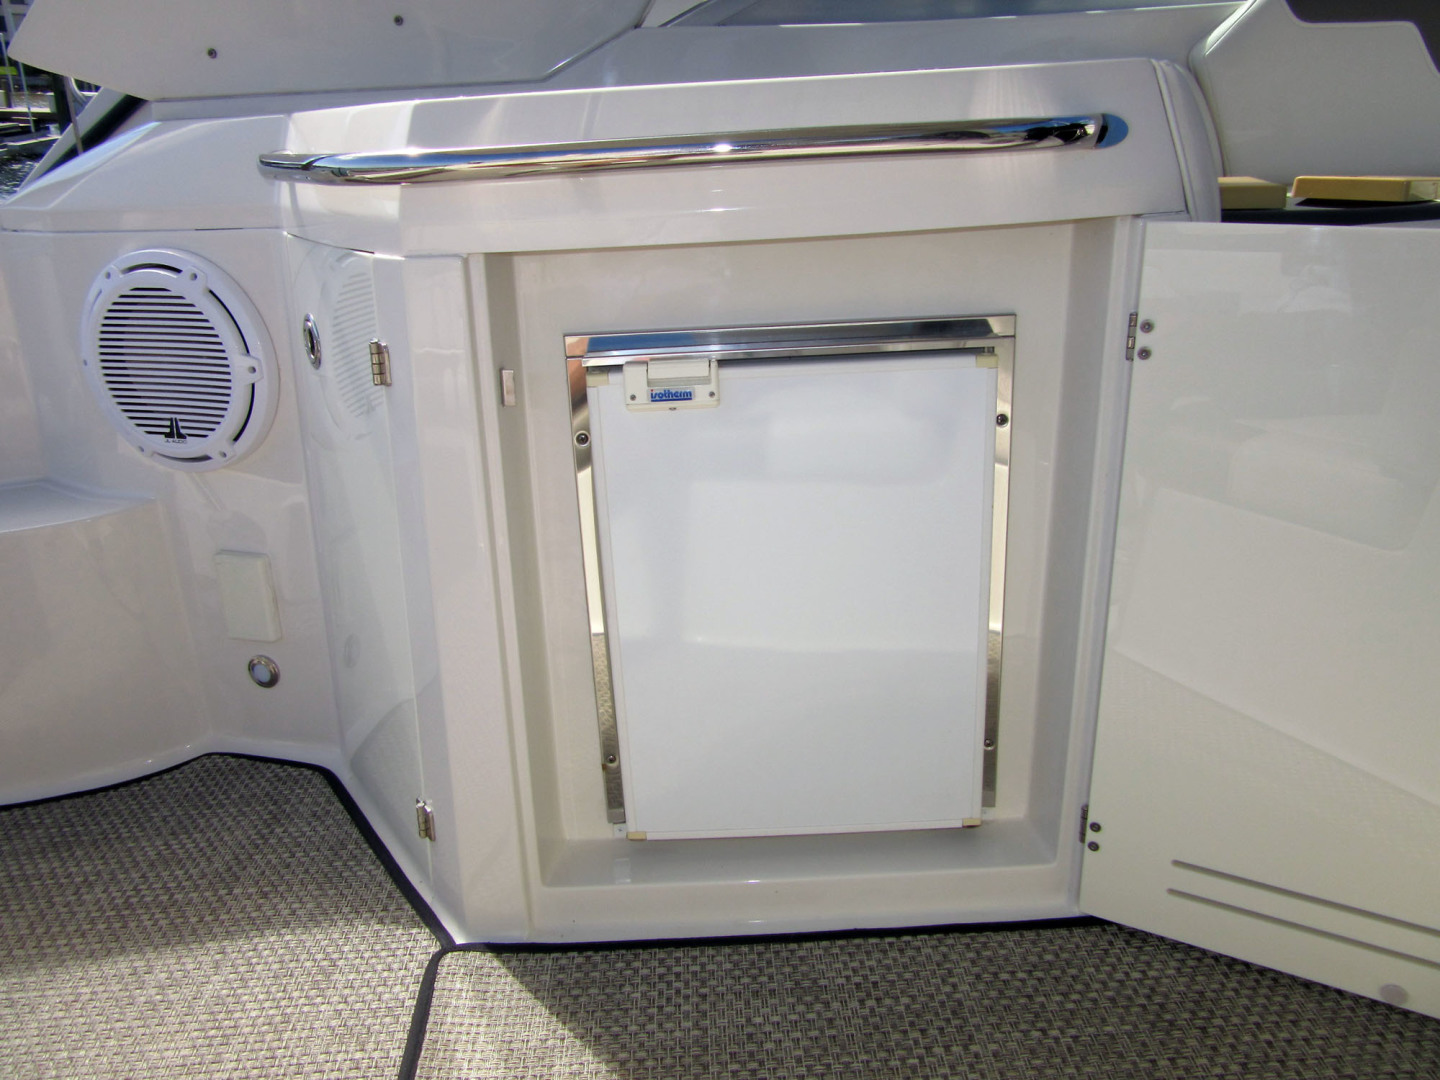 Monterey-355 Sport Yacht 2014-Sunset Serenity St. Petersburg-Florida-United States-Cockpit Refrigerator-1498602 | Thumbnail